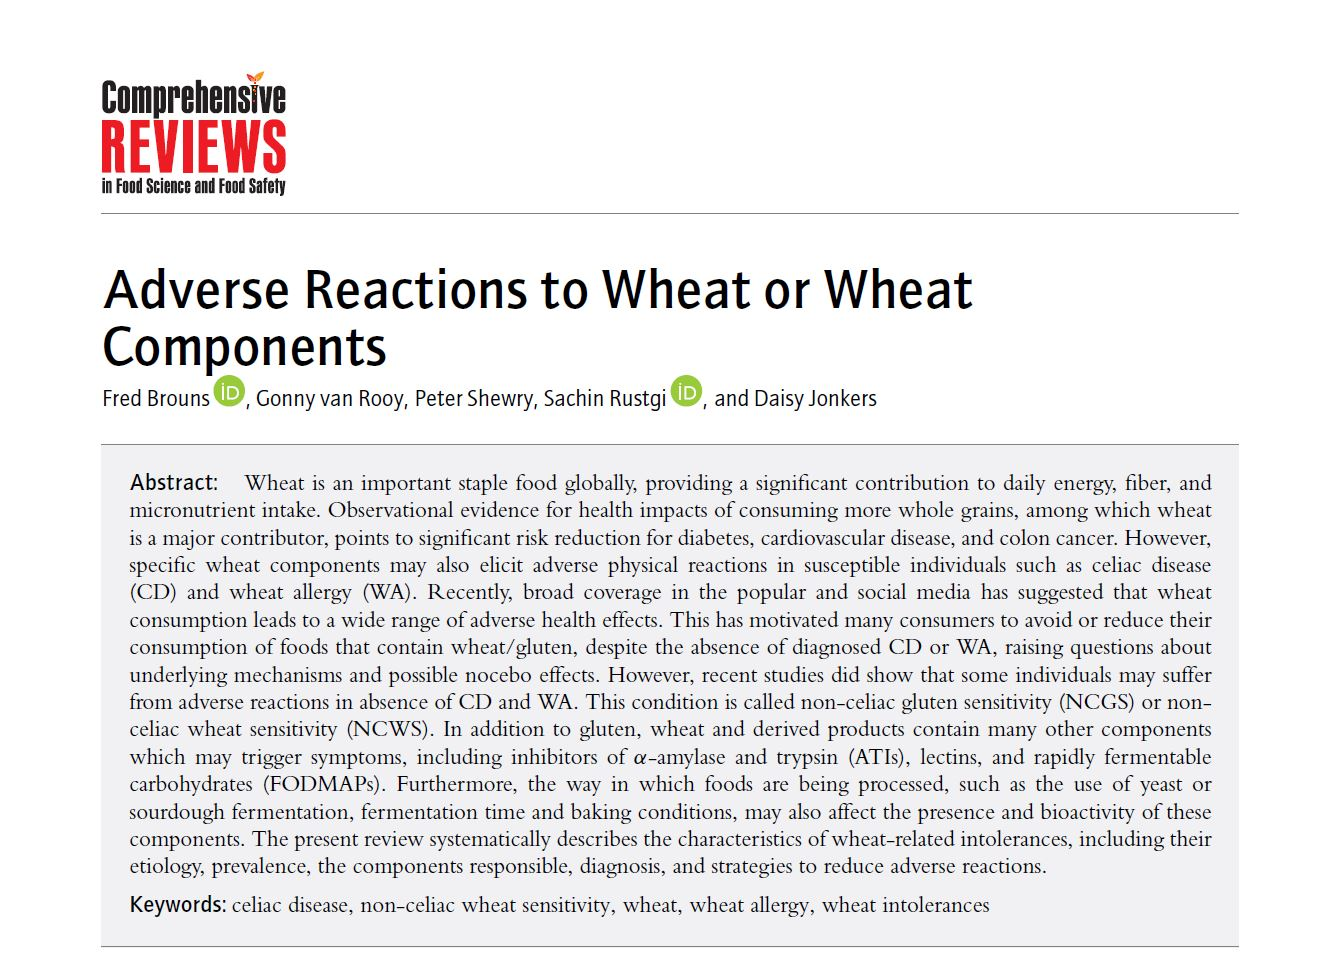 Comprehensive Reviews: Adverse Reactions to Wheat or Wheat Components